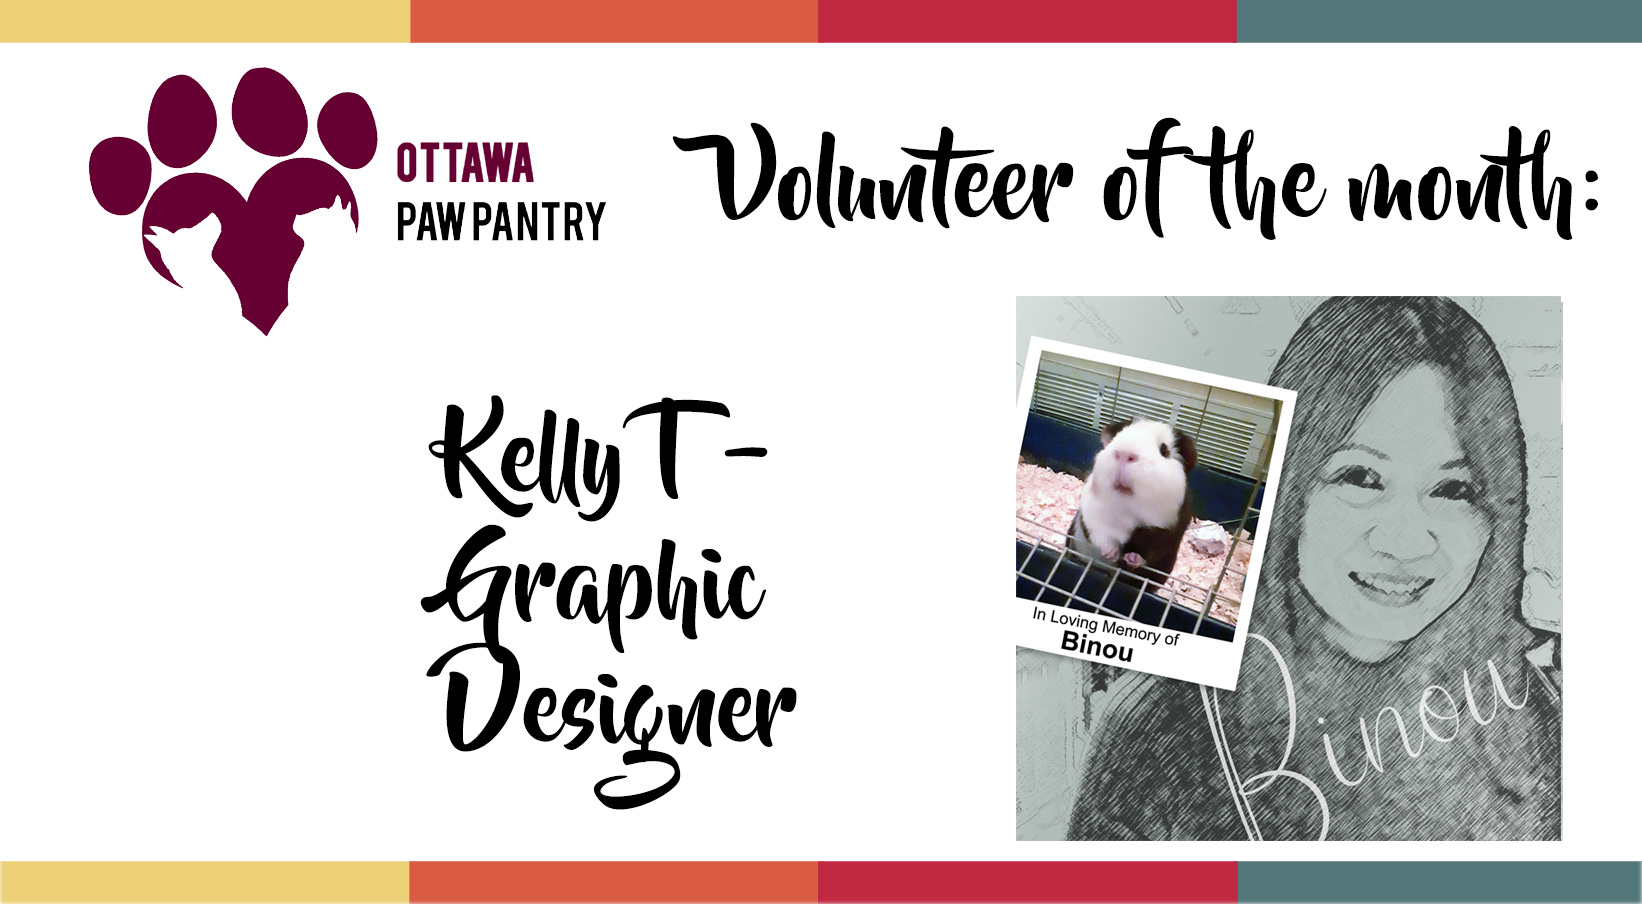 Volunteer of the month: Kelly